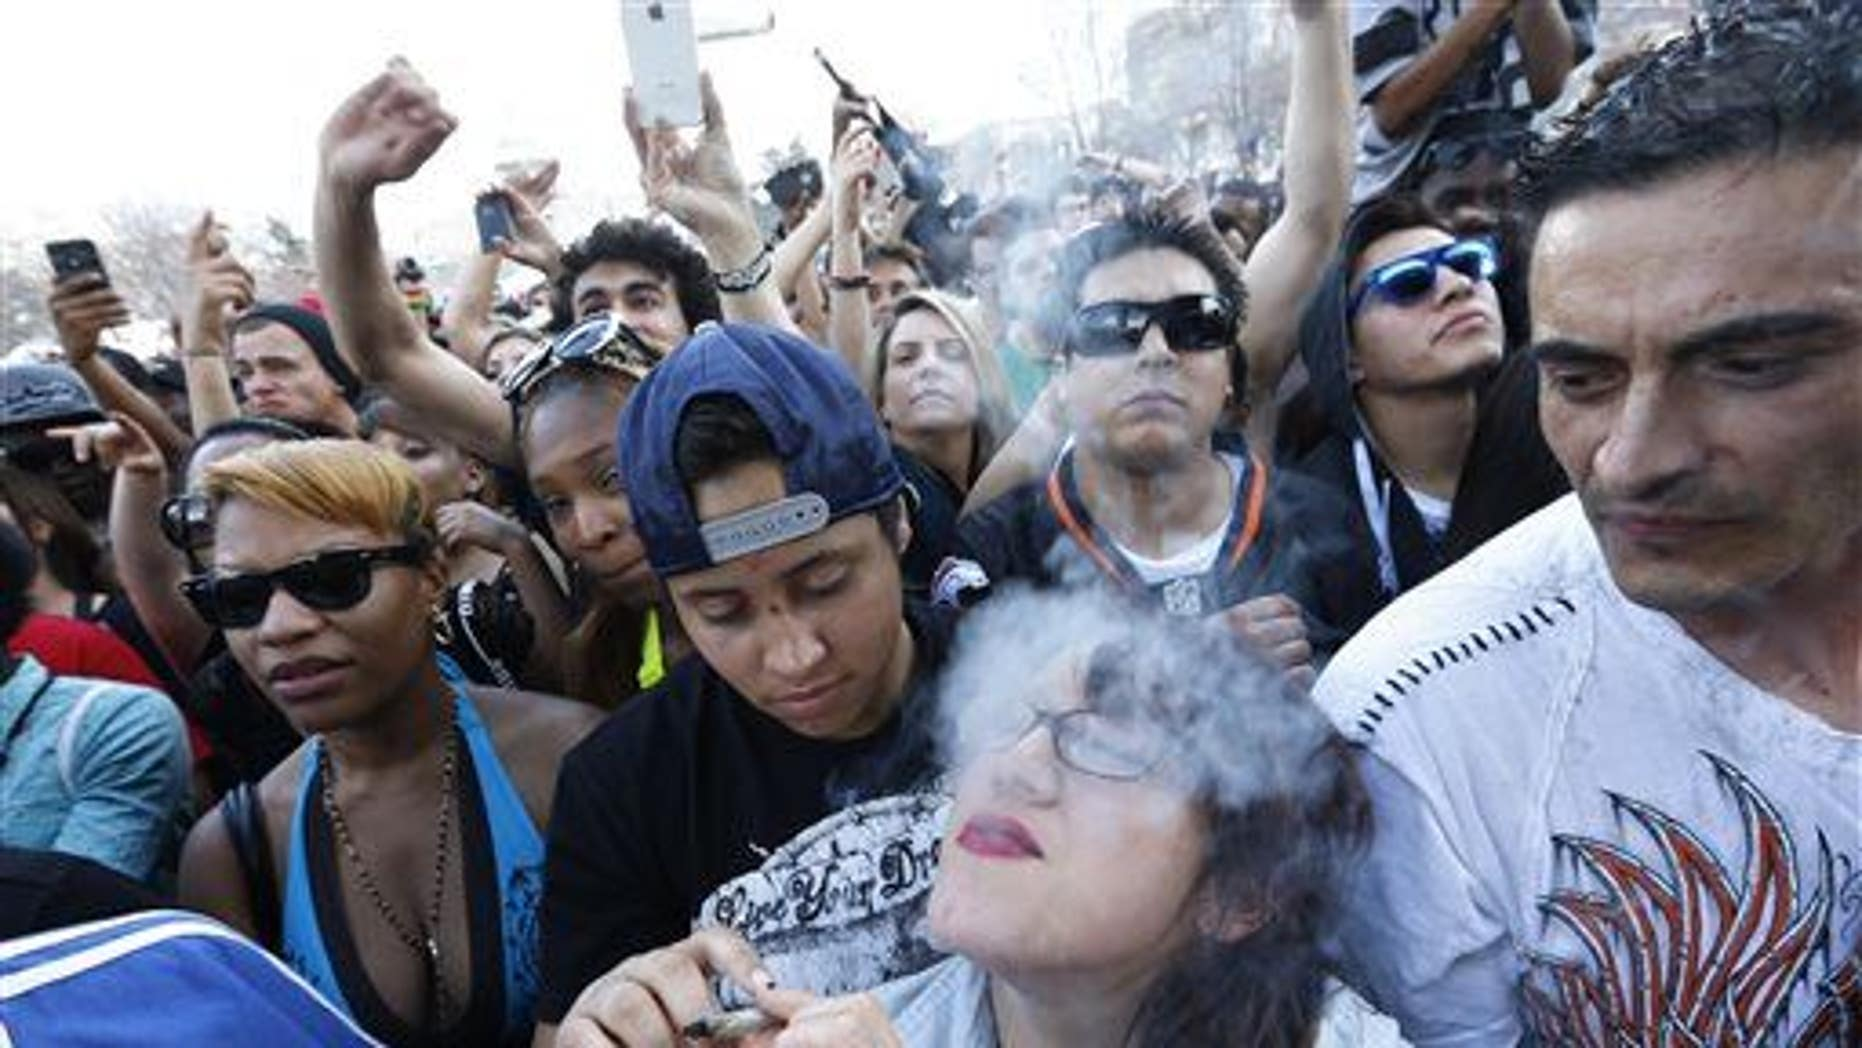 Partygoers listen to live music and smoke pot on the second of two days at the annual 4/20 marijuana festival in Denver, Sunday, April 20, 2014.